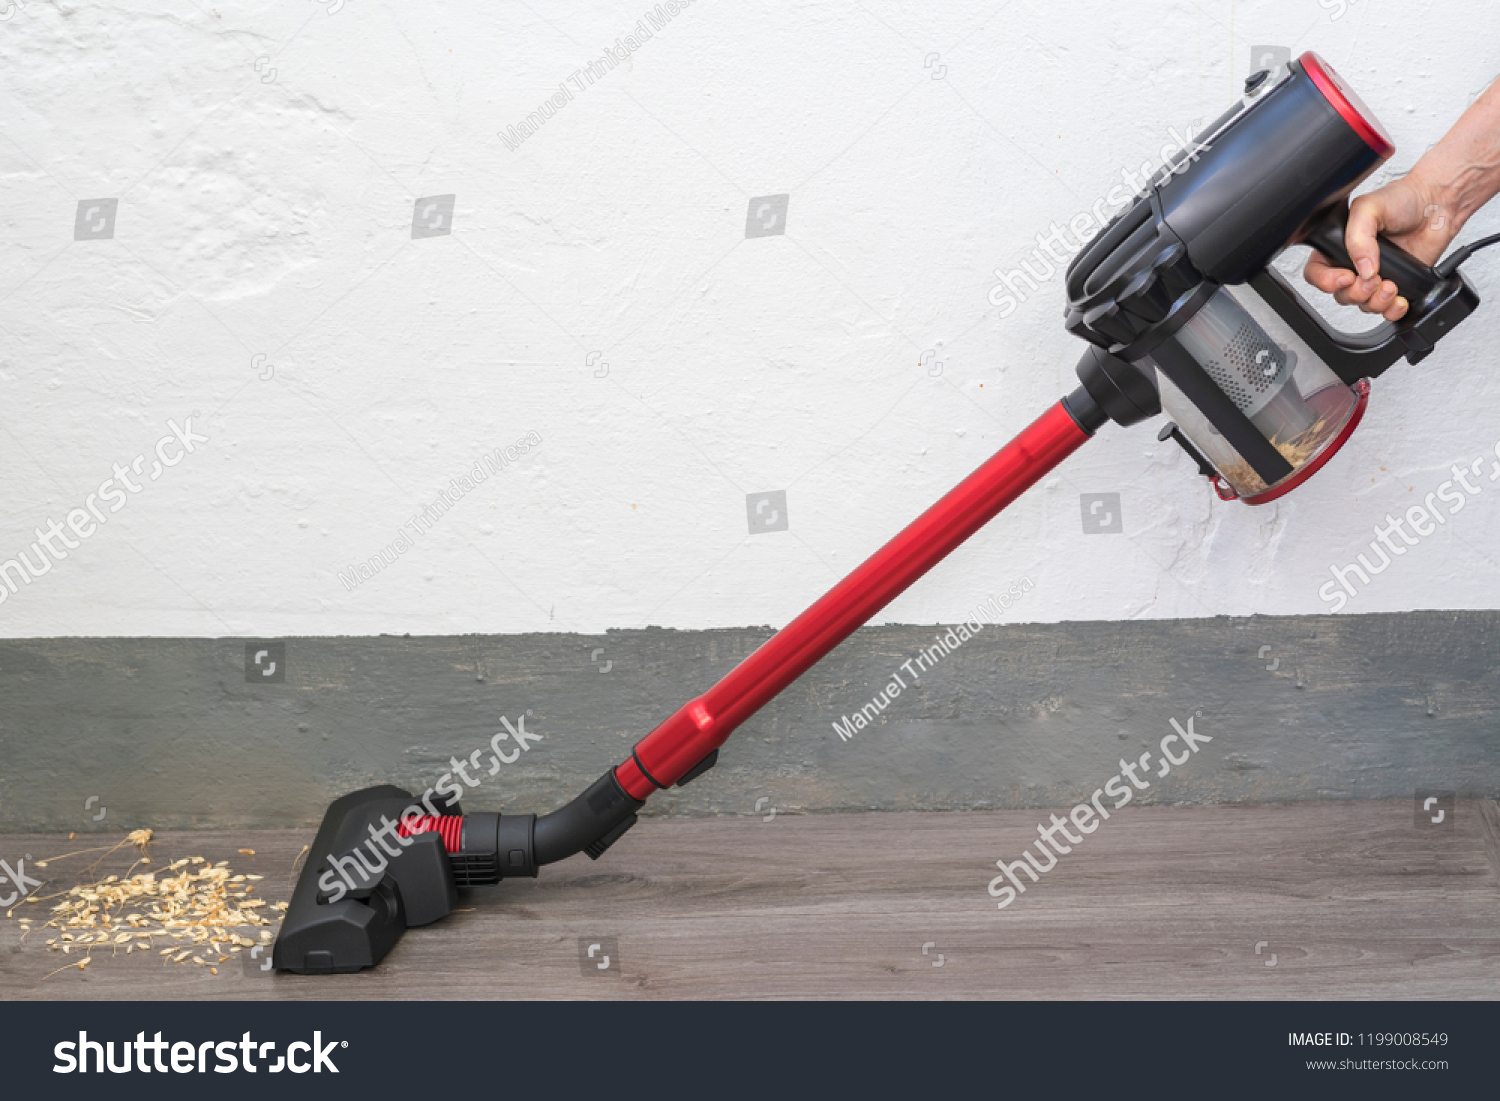 stock-photo-vertical-hand-vacuum-sucks-d